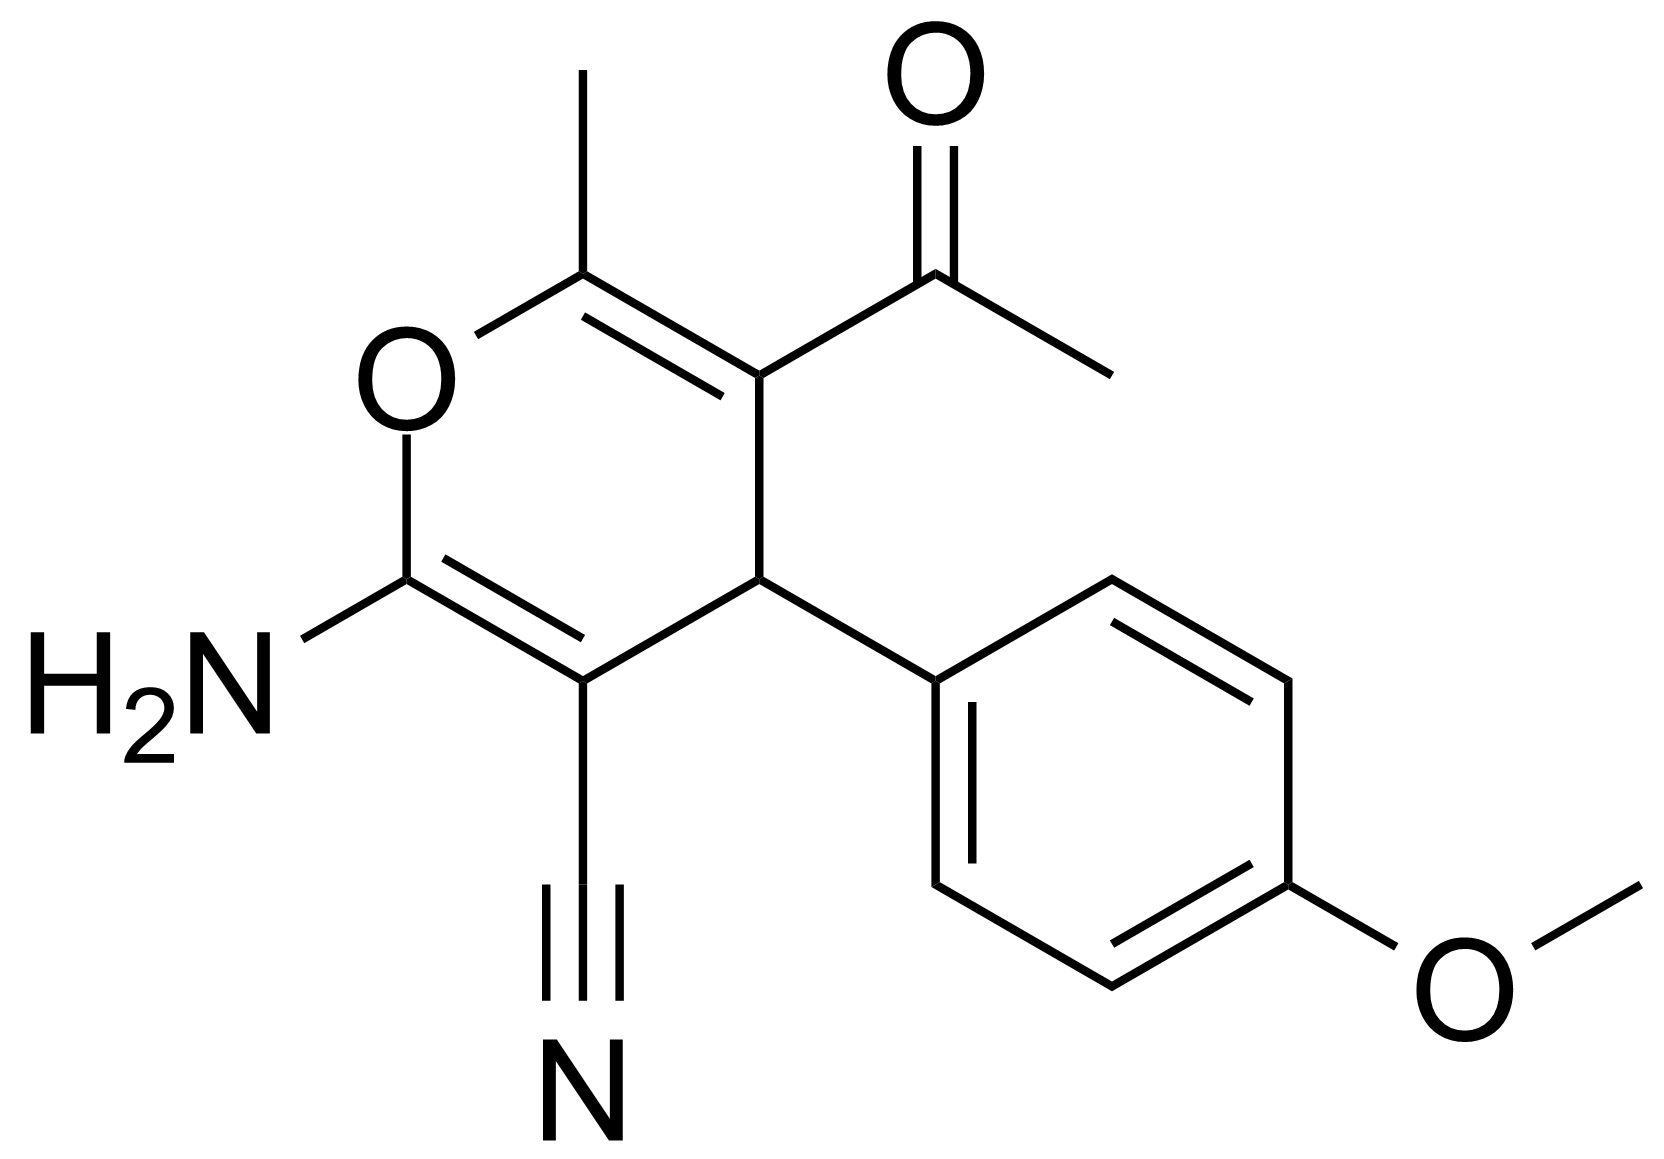 Structure of 5-Acetyl-2-amino-4-(4-methoxyphenyl)-6-methyl-4H-pyran-3-carbonitrile